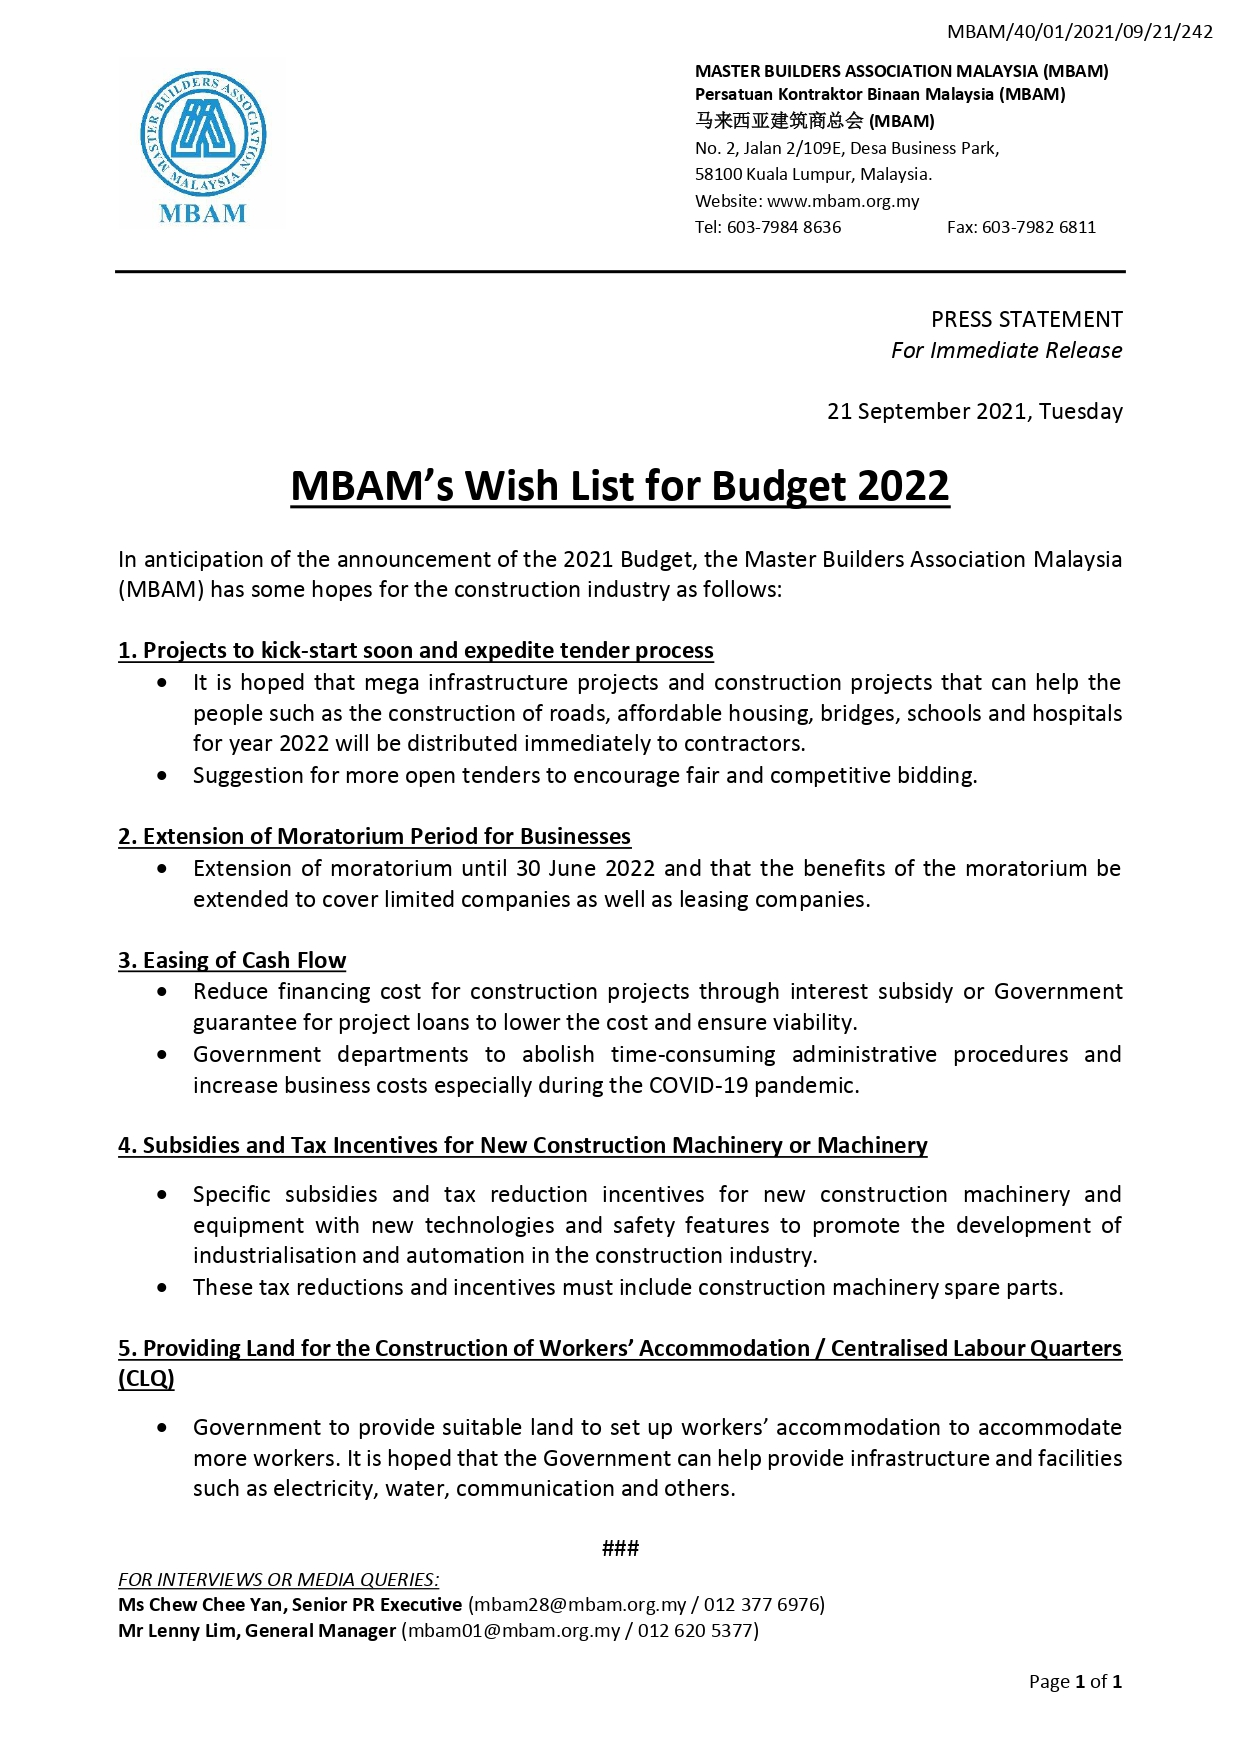 20210921 MBAM Wish List for Budget 2022_page-0001